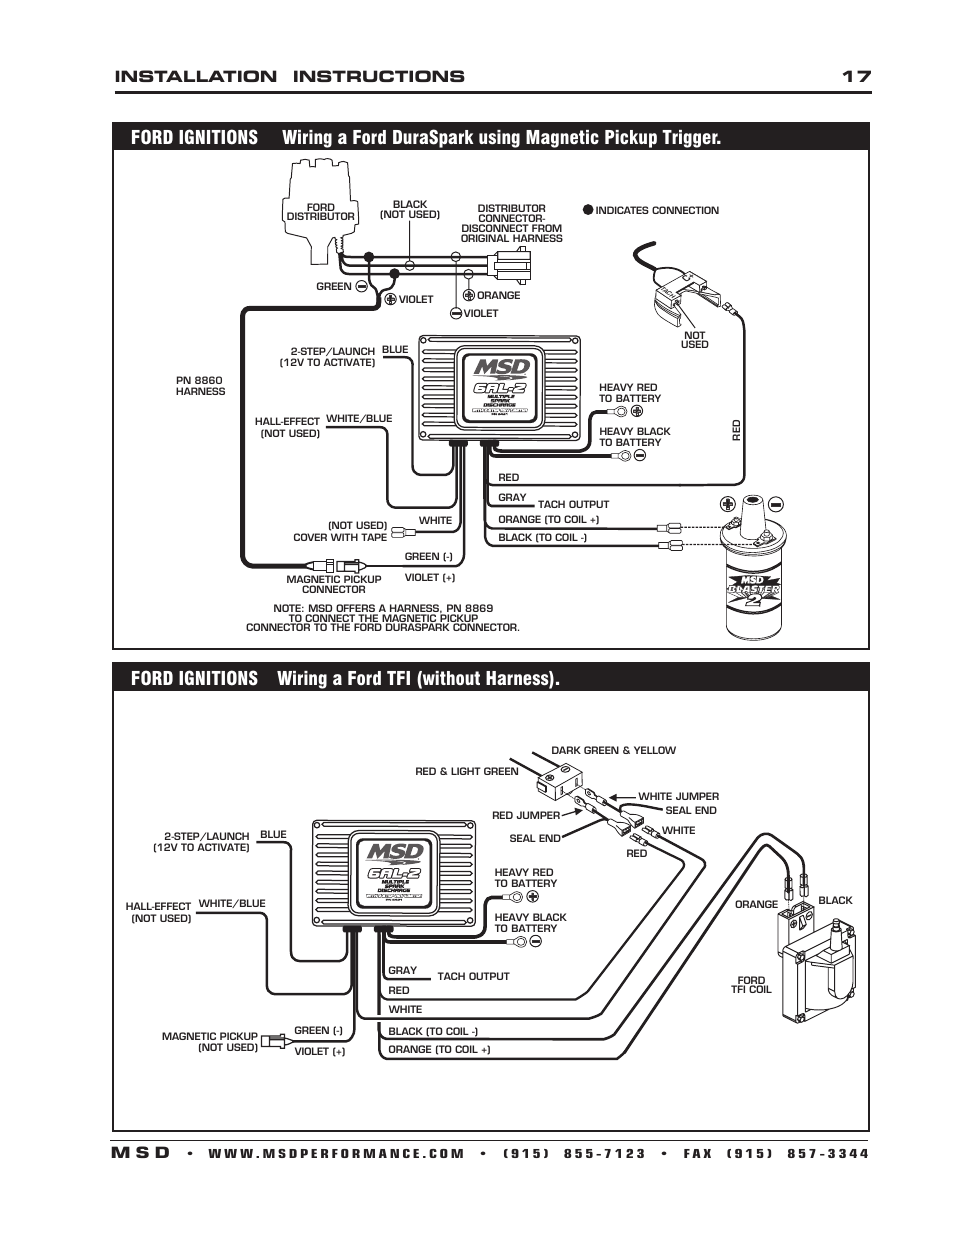 msd 8982 wiring diagram msd wiring diagram hei solidfonts msd ...